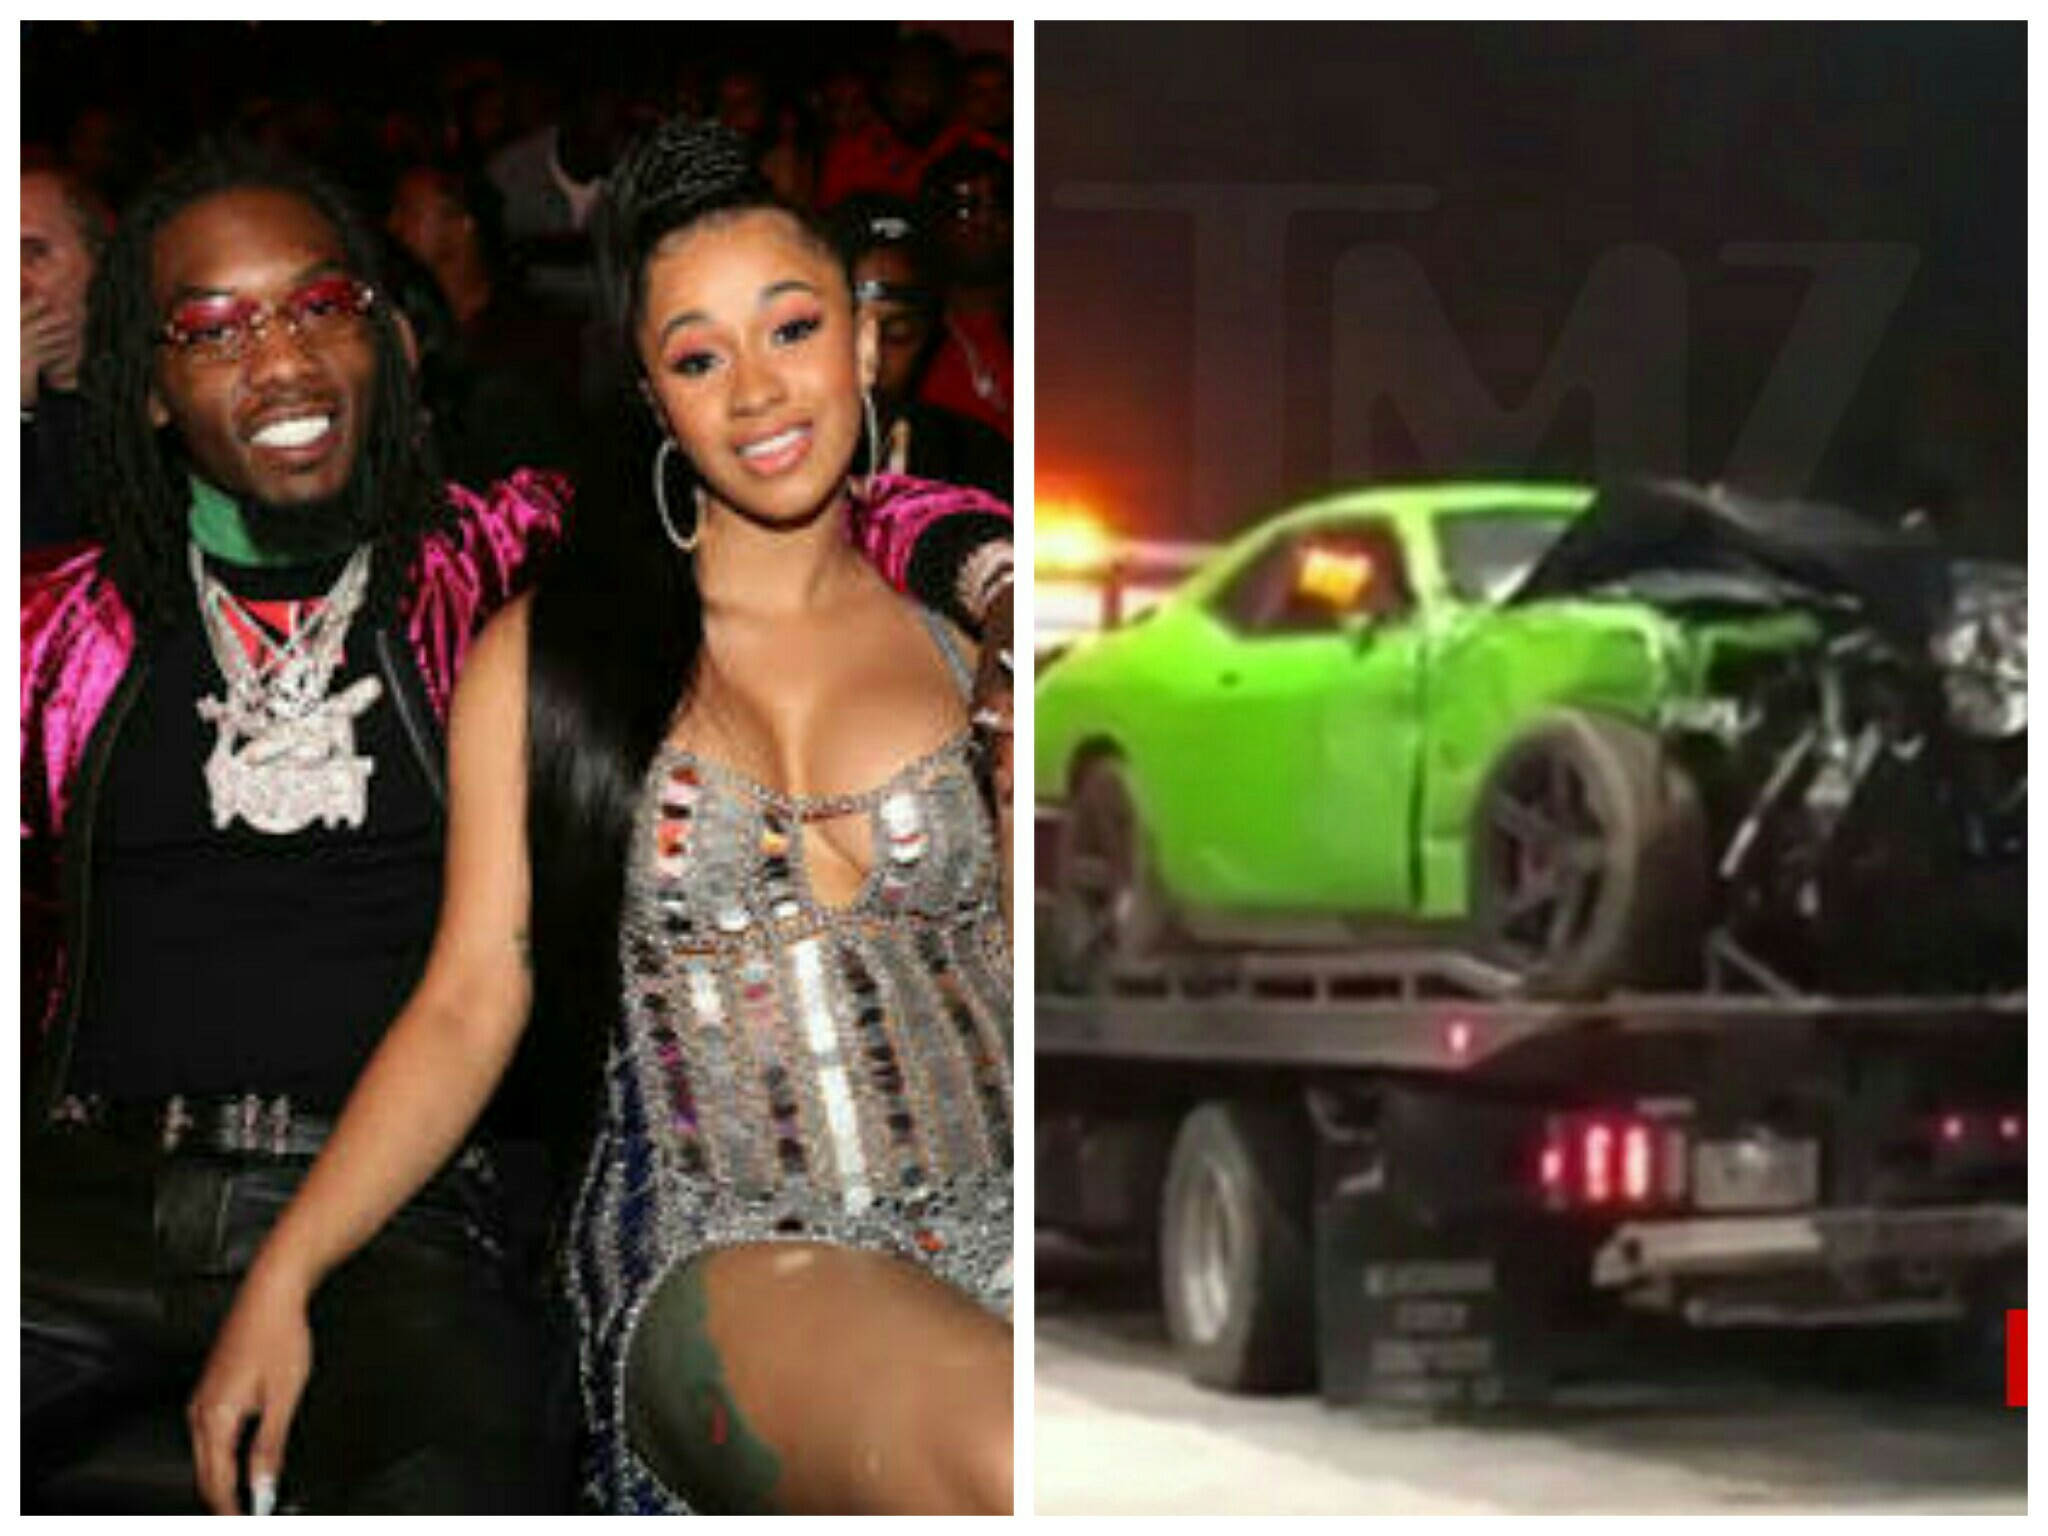 Cardi B 'so grateful' after fiance survives auto crash